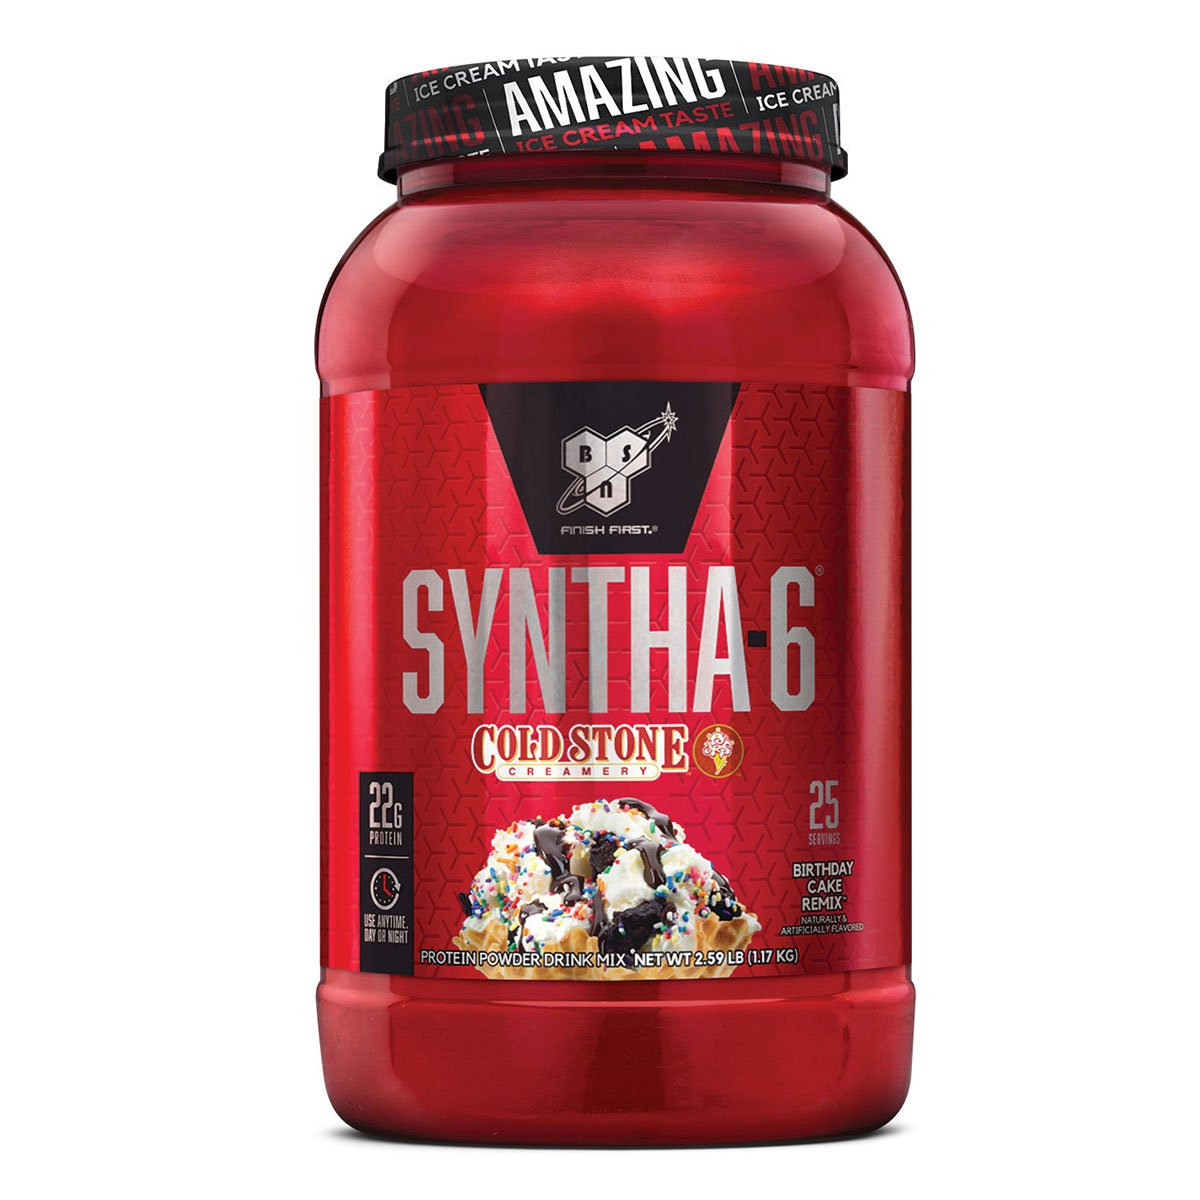 Syntha 6 Cold Stone Creamery Campusprotein